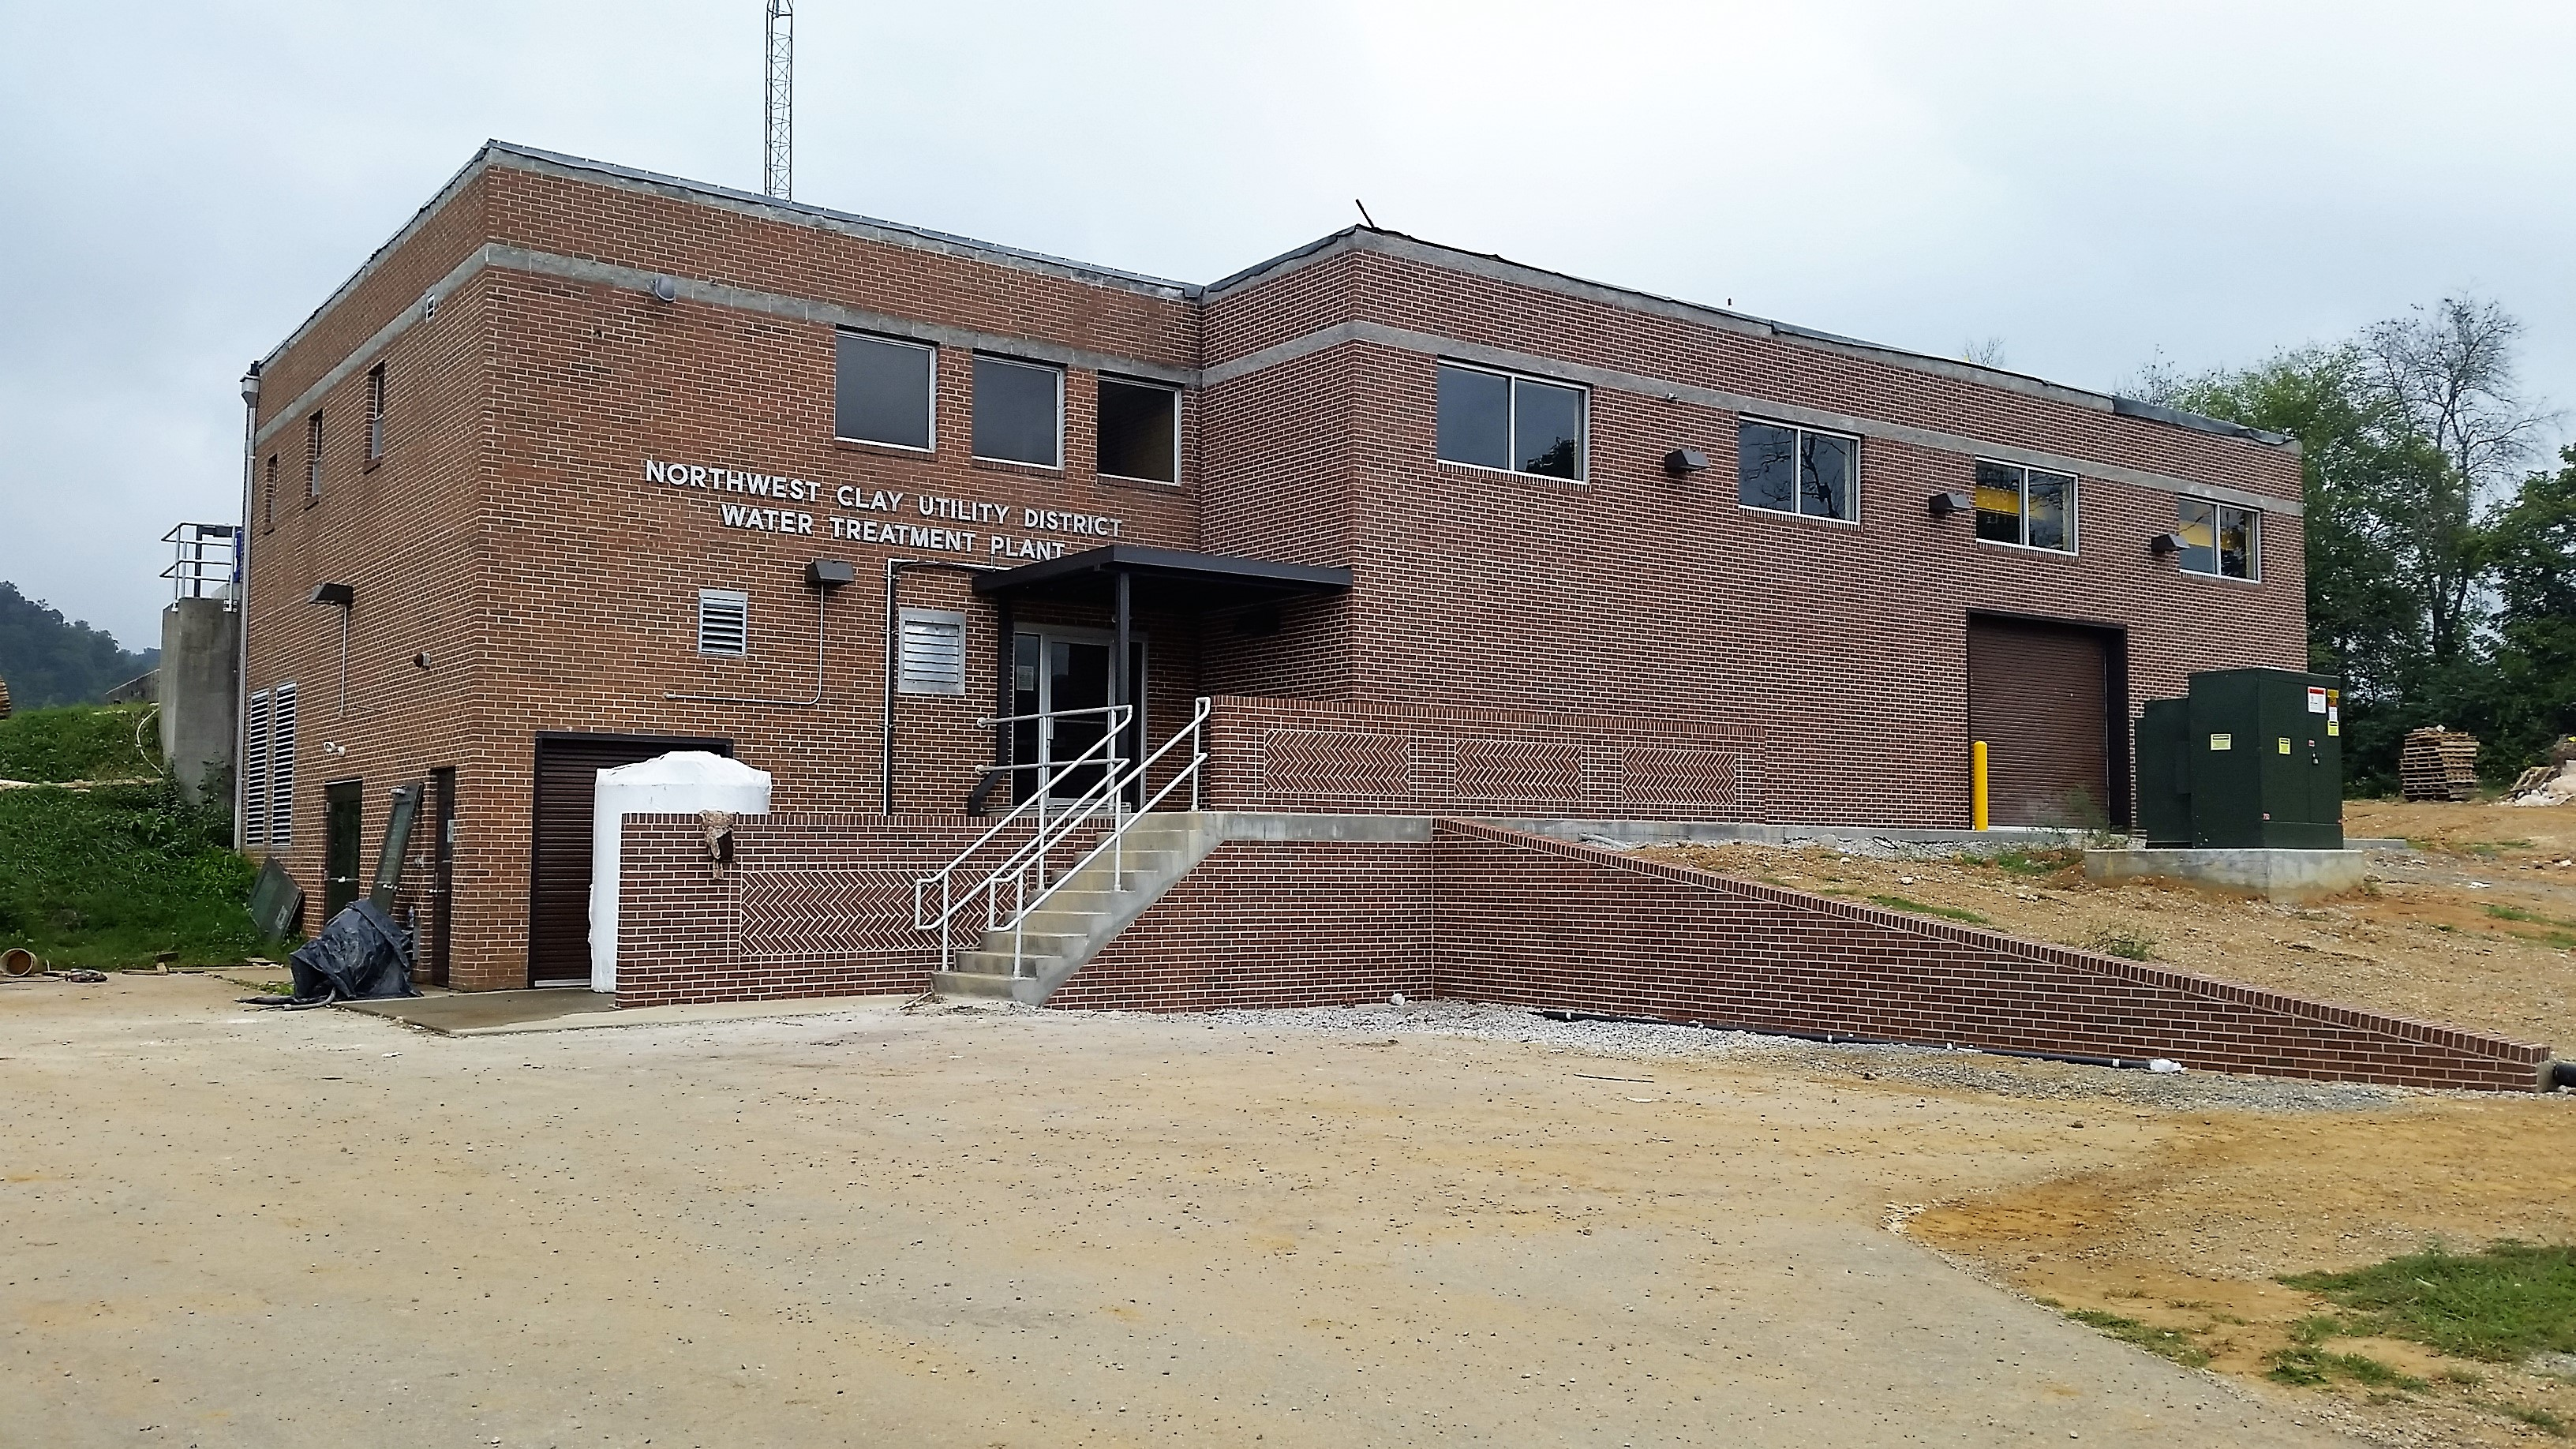 Northwest Clay UD - Water Treatment Plant